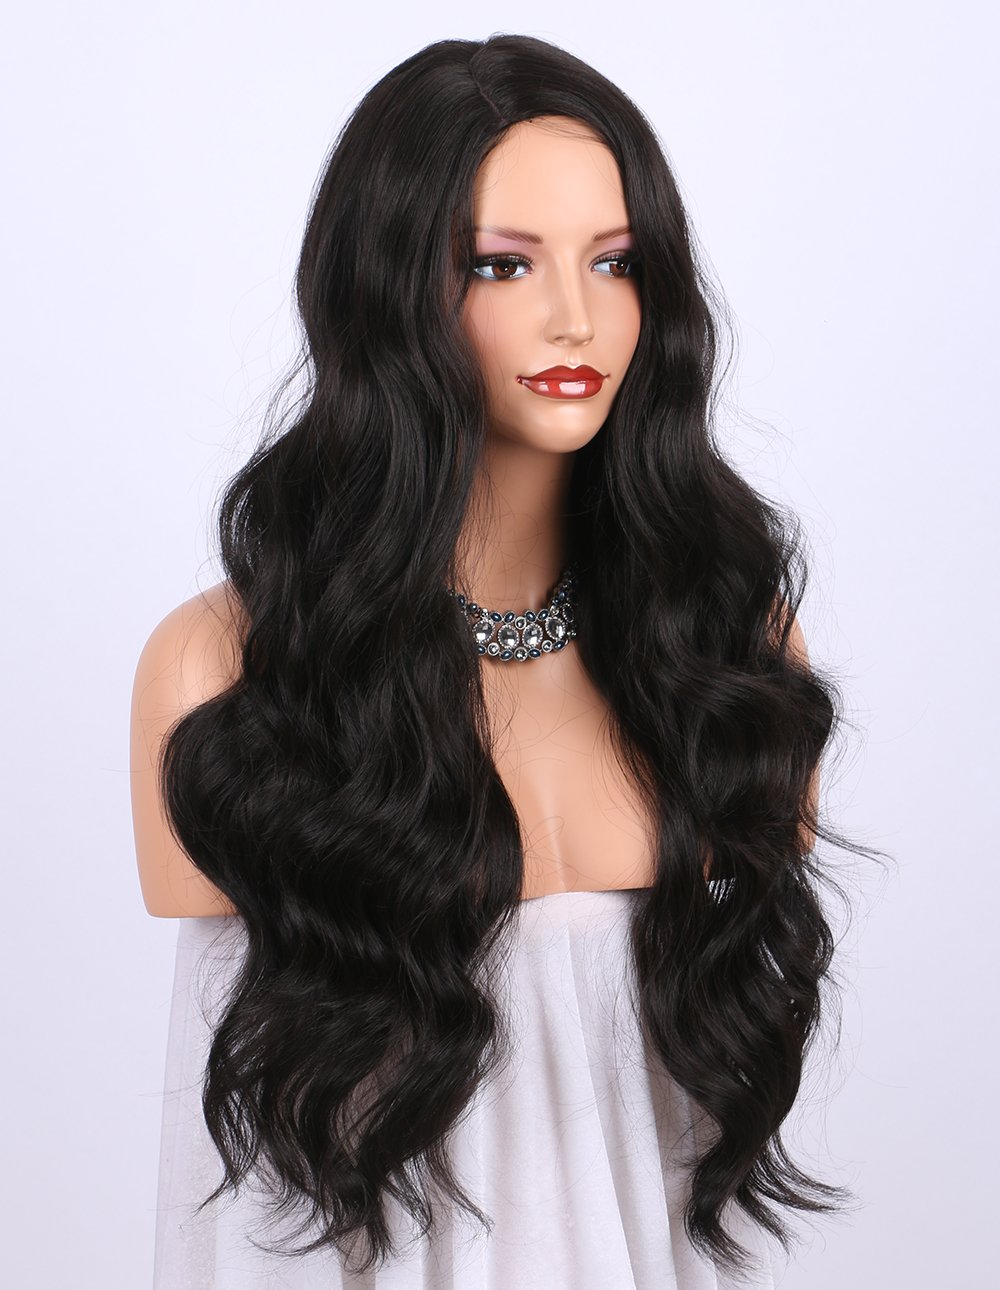 K'ryssma Dark Brown Synthetic Wigs for women - Natural Looking Long Wavy Right Side Parting Heat Resistant Replacement Wig Full Machine Made 24 inches (#2) by K'ryssma